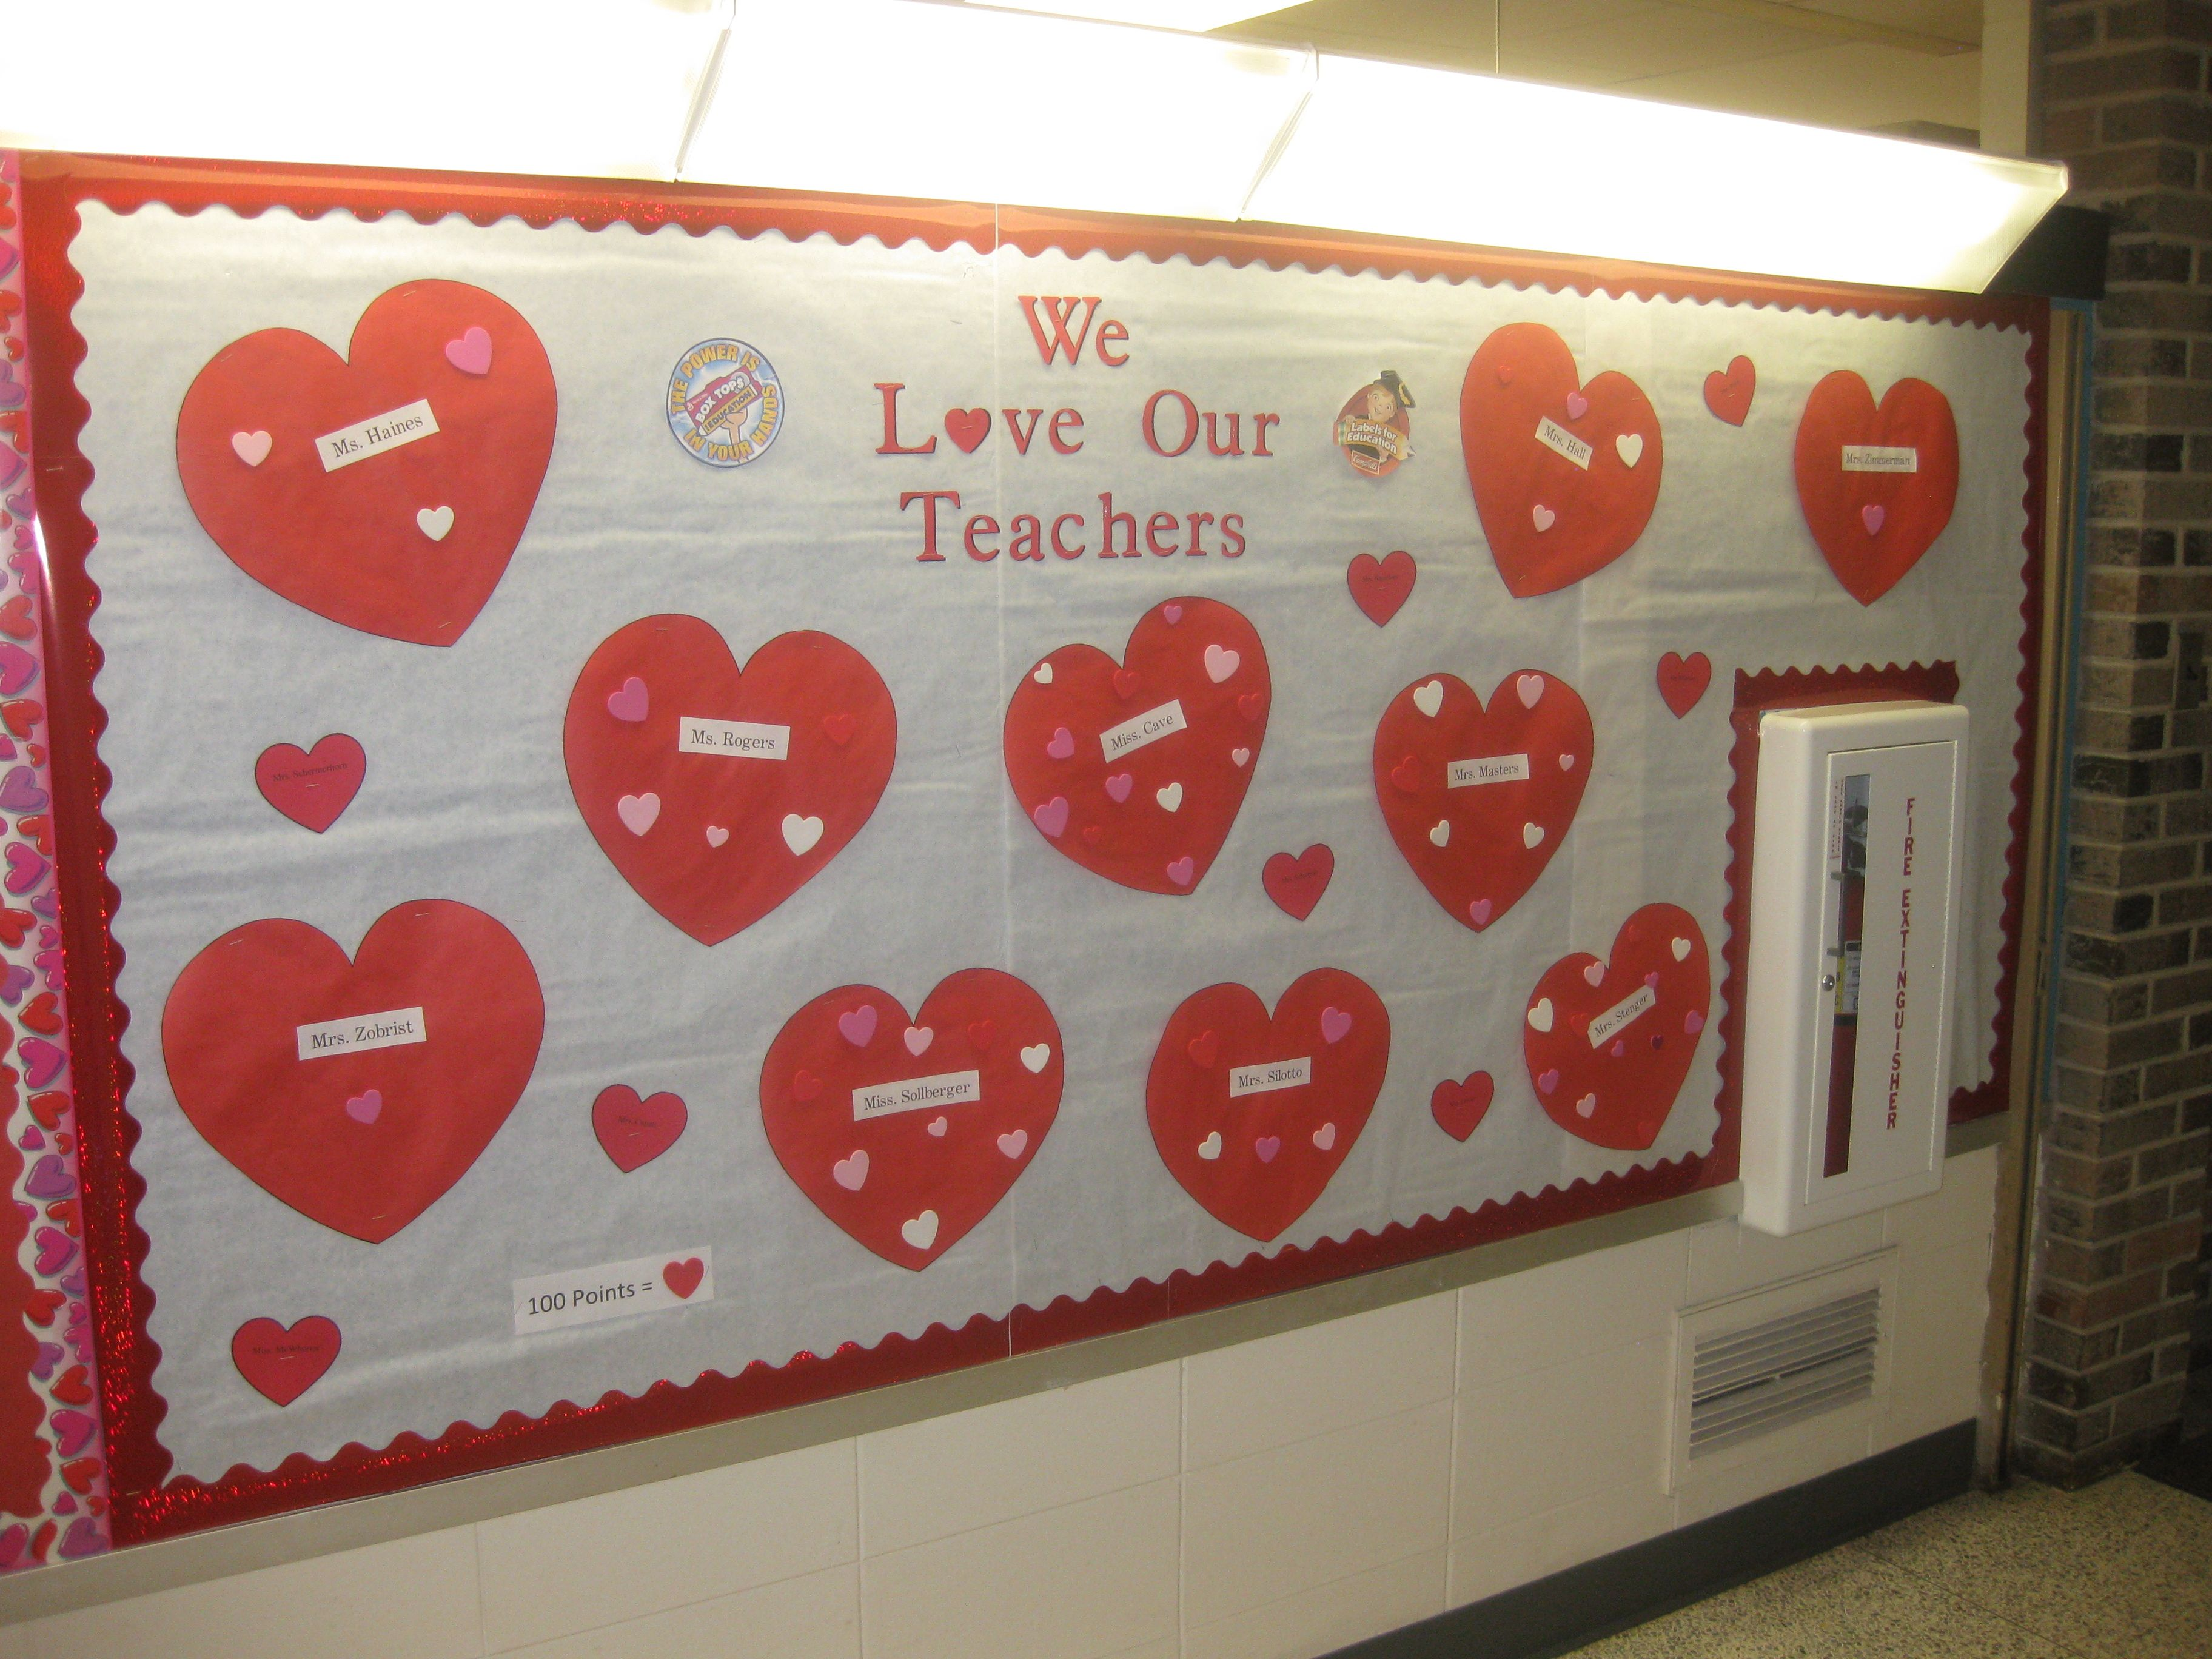 We Love Our Teachers Collection Contest For Every 100